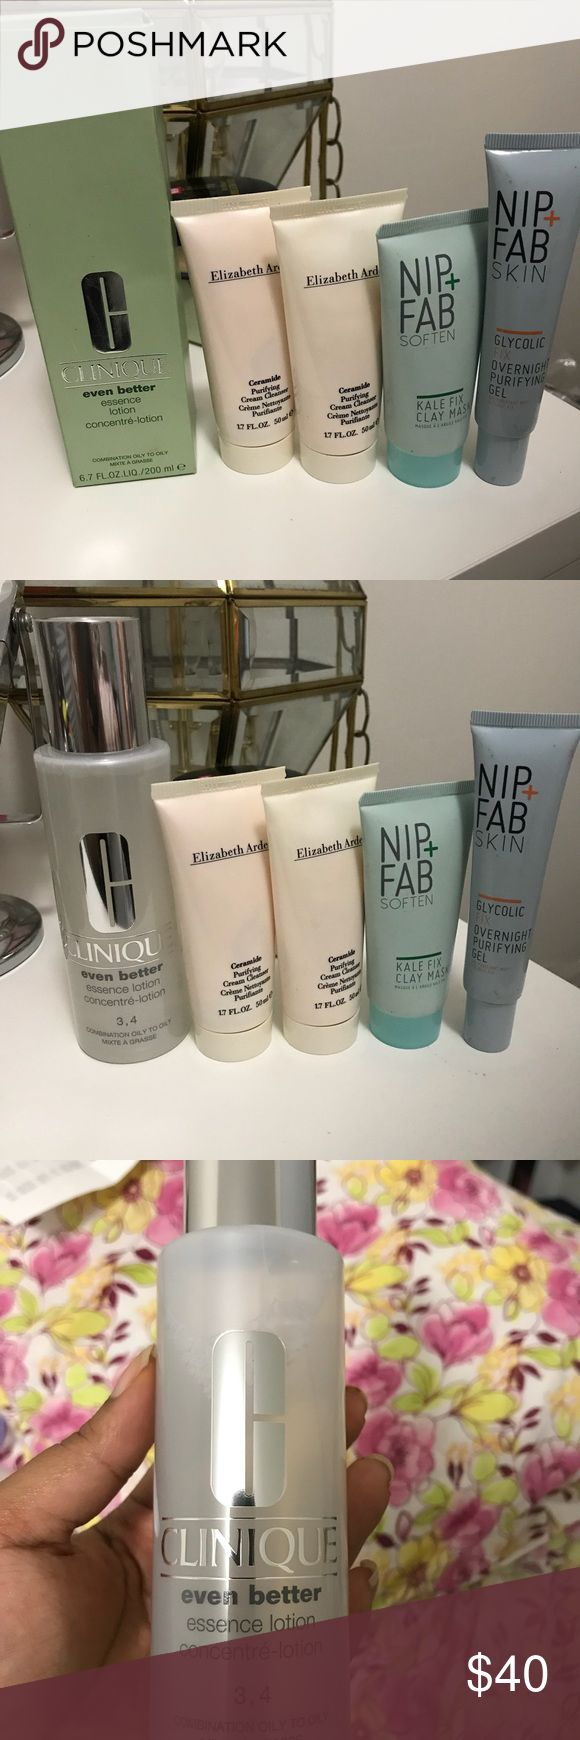 Skin care set Clinique even better skin lotion combination oily skin. Two Elizabeth Arden face wash. One nip fab face mask, and one overnight purifying gel. Face wash and overnight gel are the only products that are not sealed, but have not been used. All products are new. Price is firm. Other